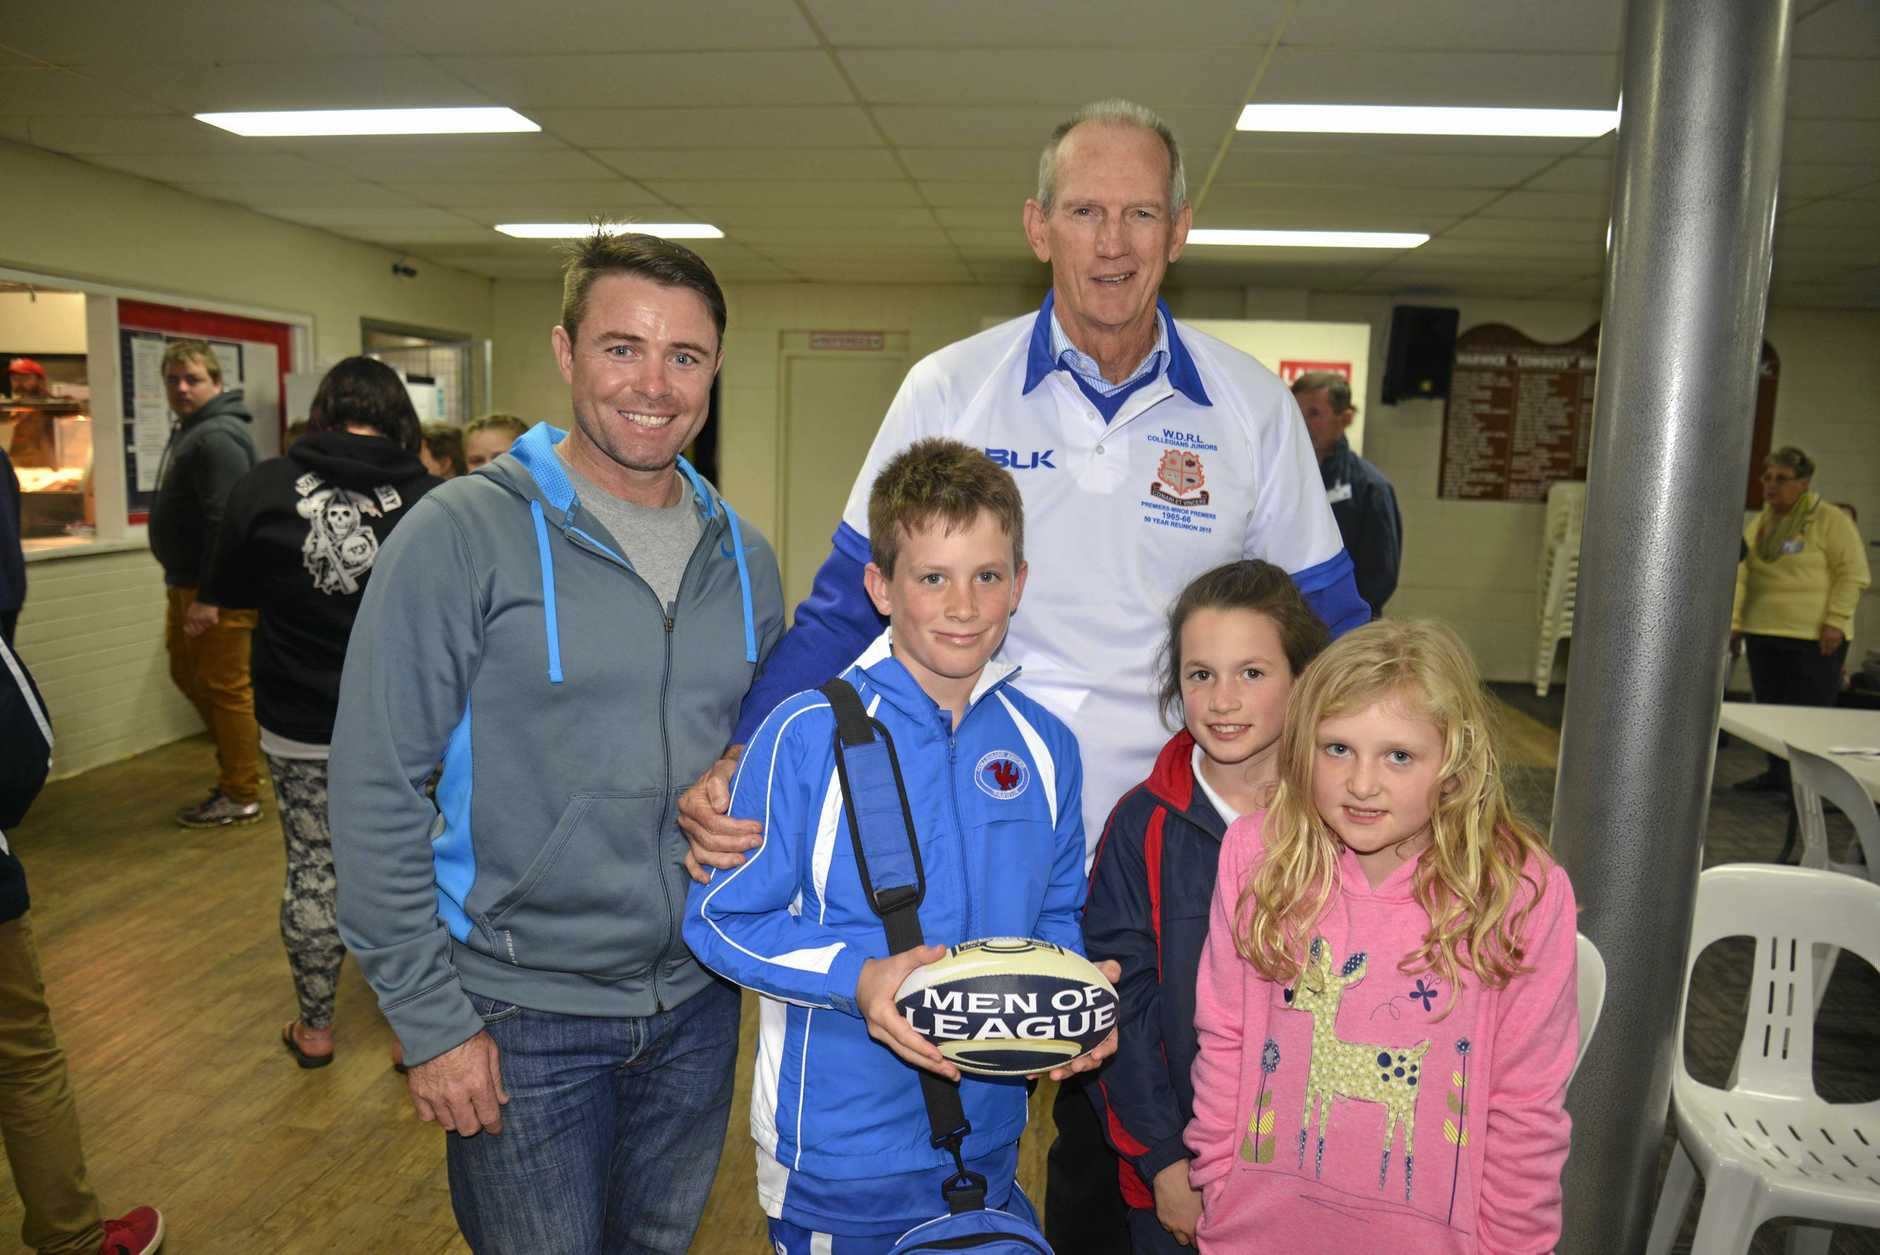 Men of League CEO Frank Barrett and Brisbane Broncos coach Wayne Bennett with Basil Nolan, Lily Nolan and Grace Ball at the Cowboys in 2015.